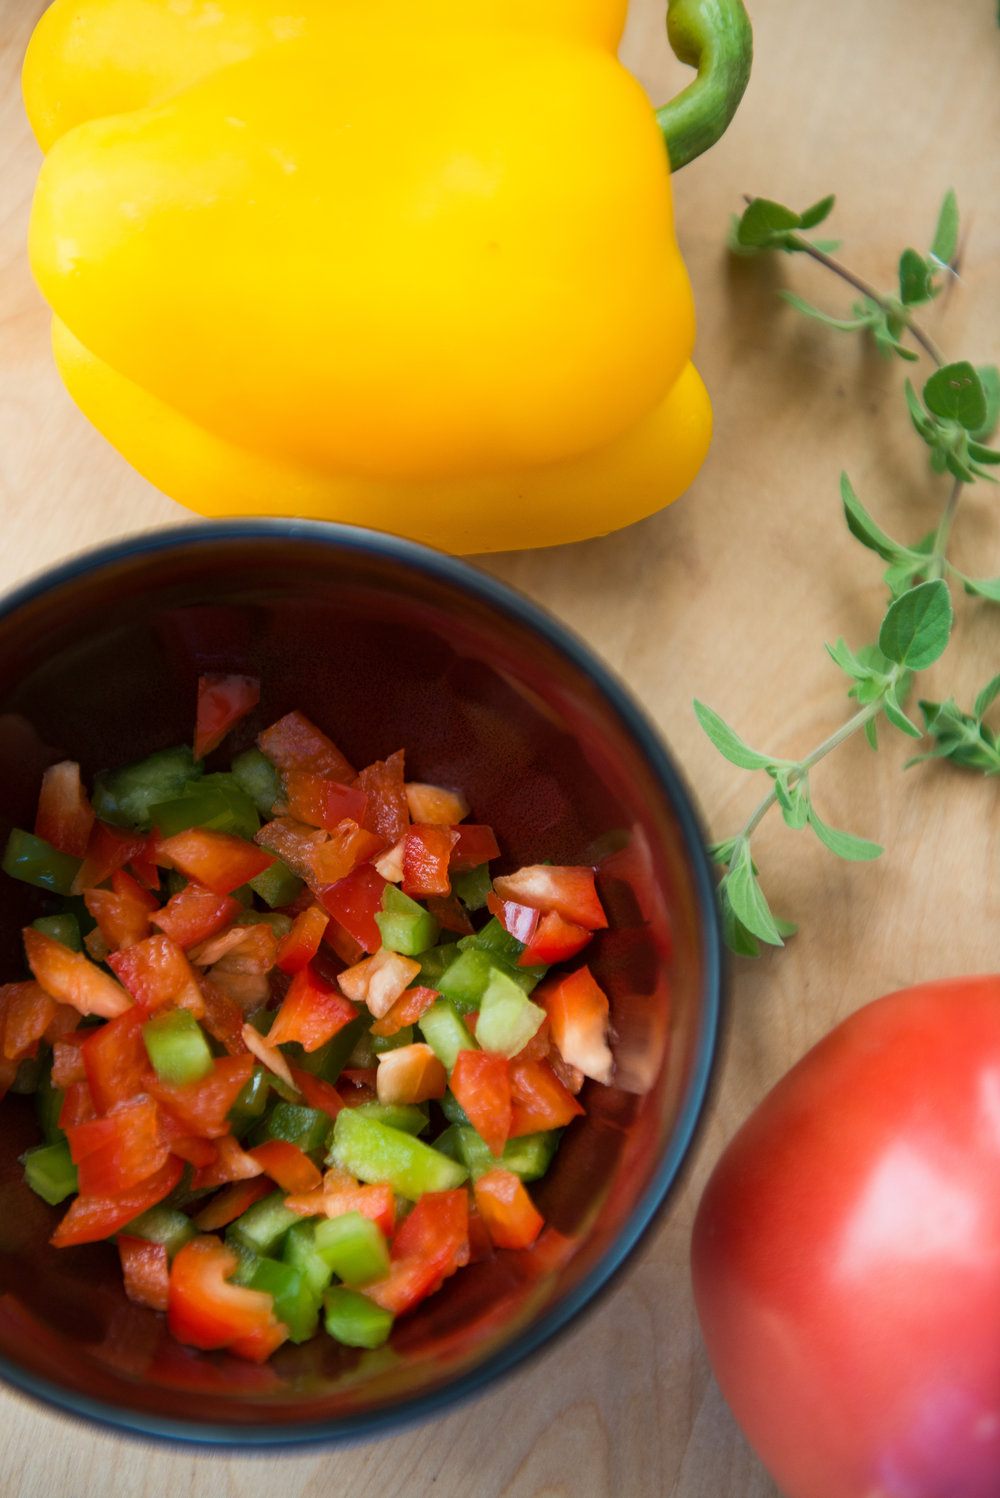 Sauté onion, chopped pepper, tomato, and garlic over moderate heat, stirring, for 15 minutes.  -